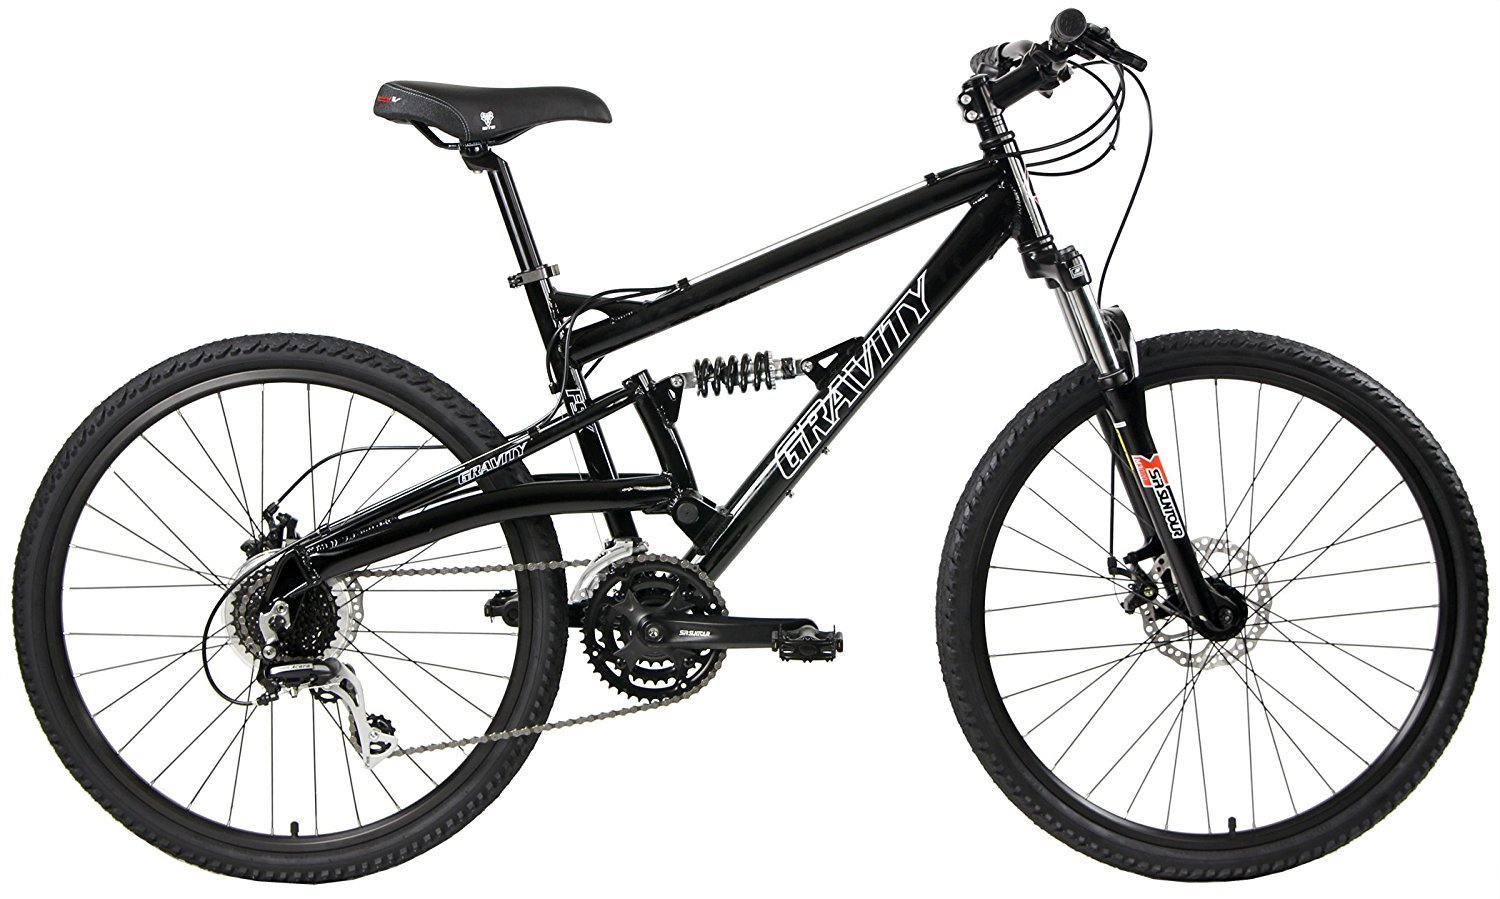 gravity fsx 1.0 dual full suspension mountain bike review